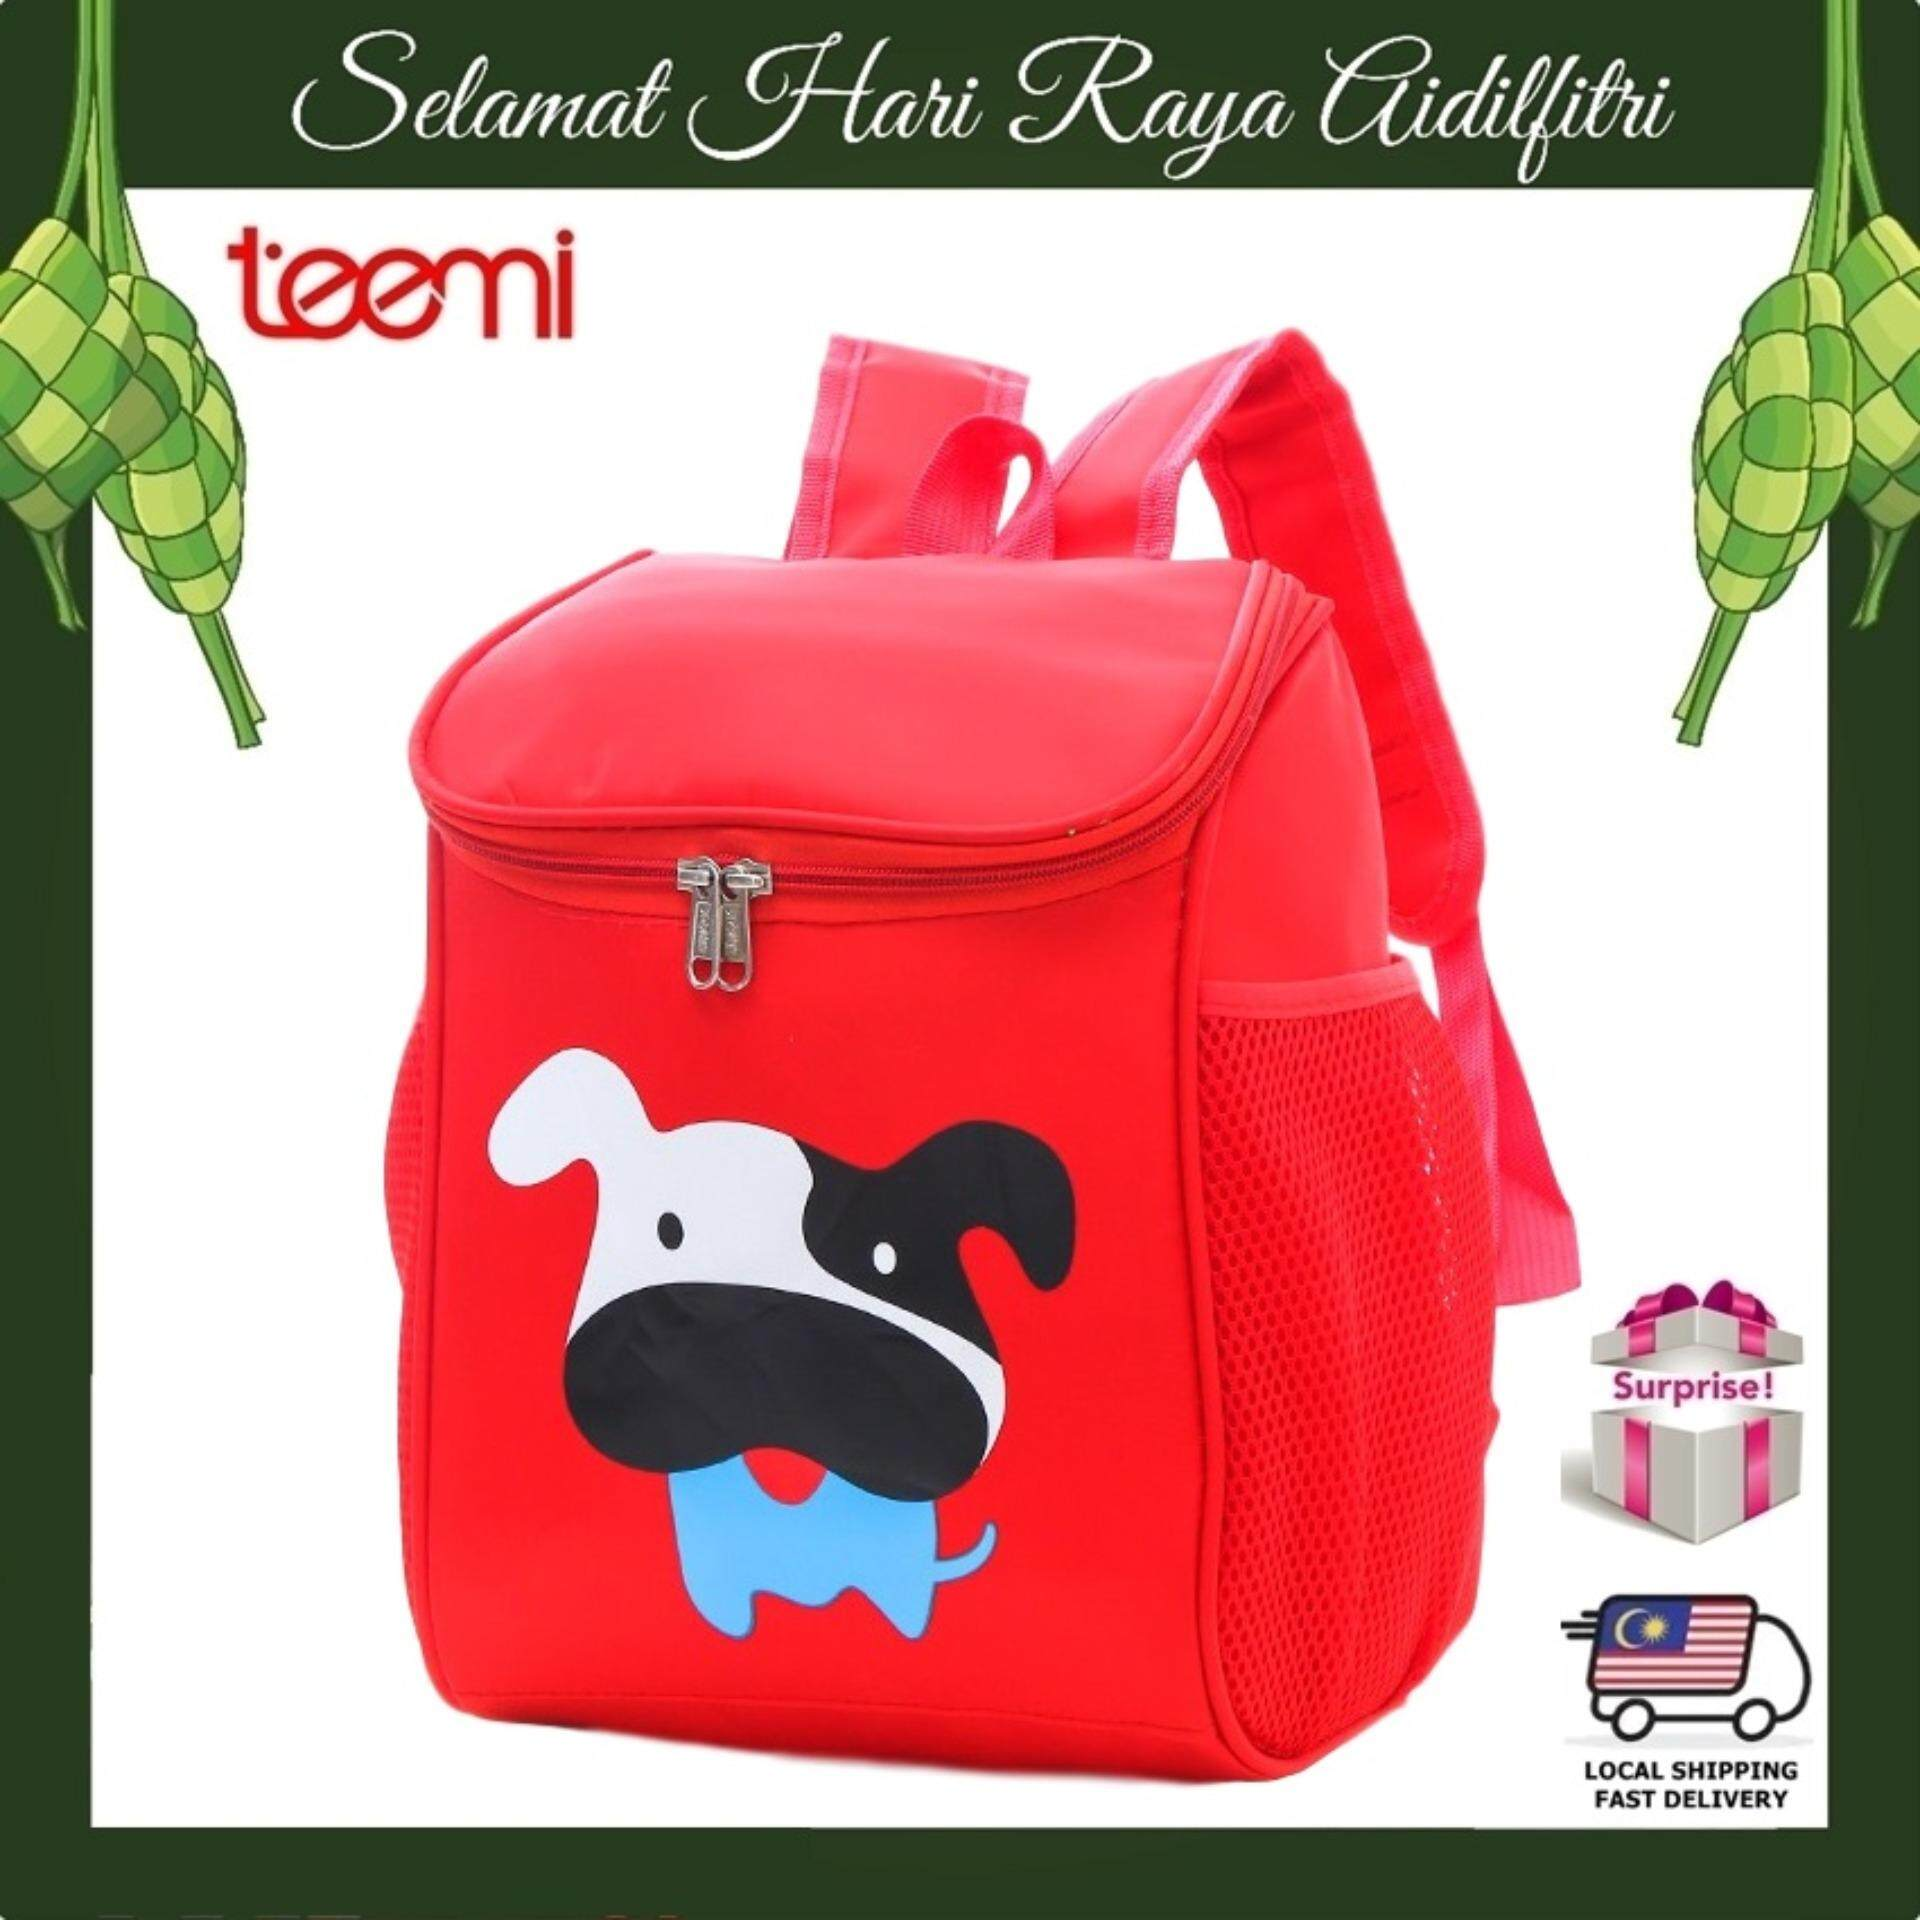 TEEMI Cartoon Animal School Bag Candy Colors Backpack Nursery Kindergarten Kids Children Toddler - Red